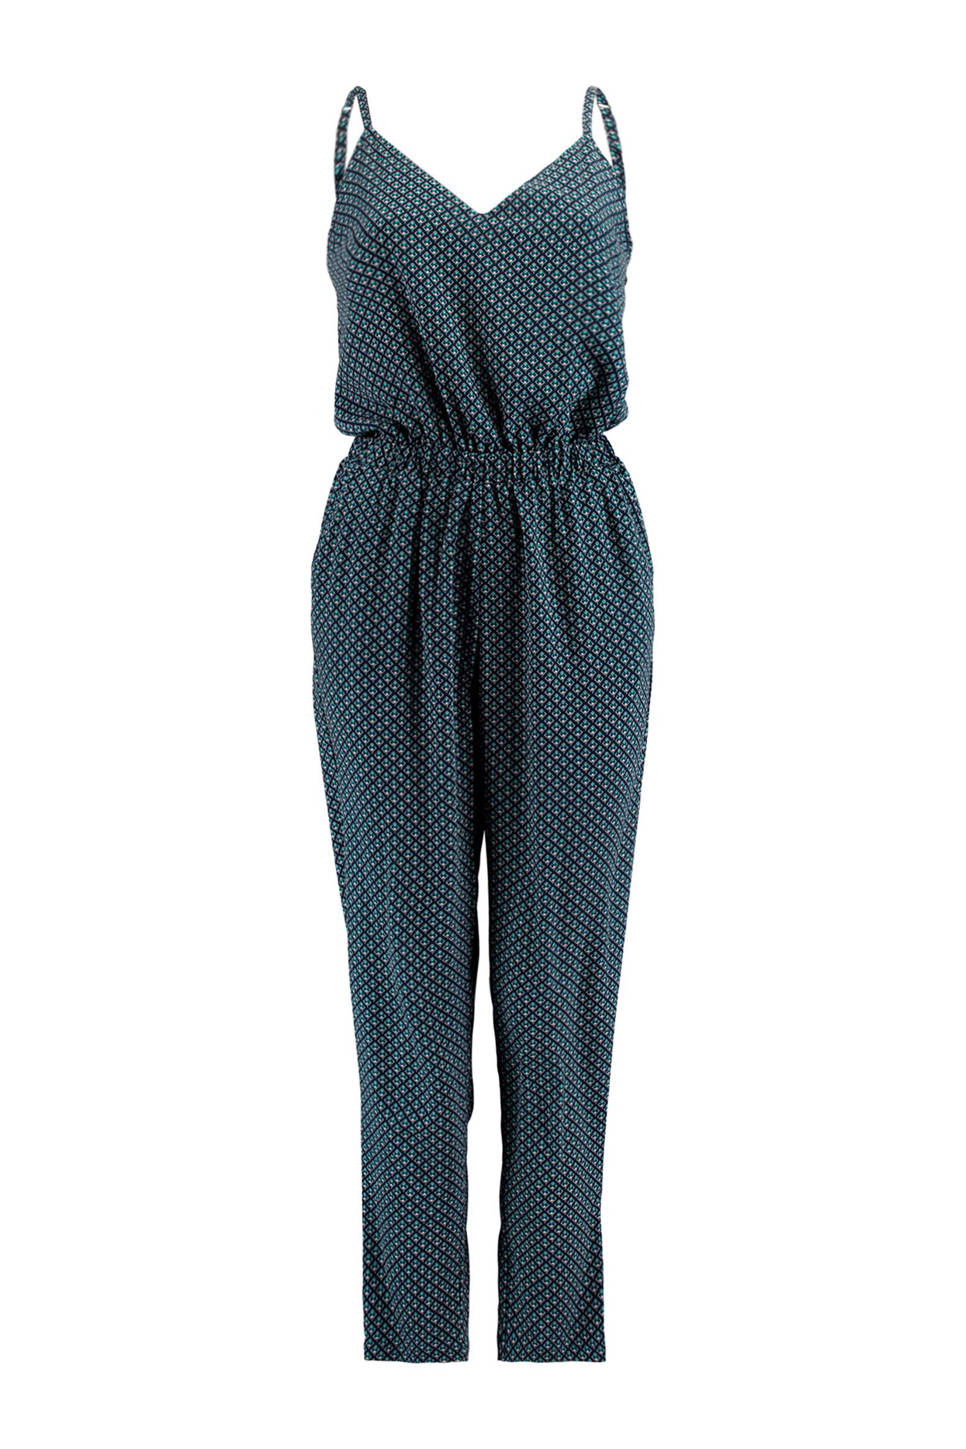 America Today jumpsuit all over print, Blauw/zwart